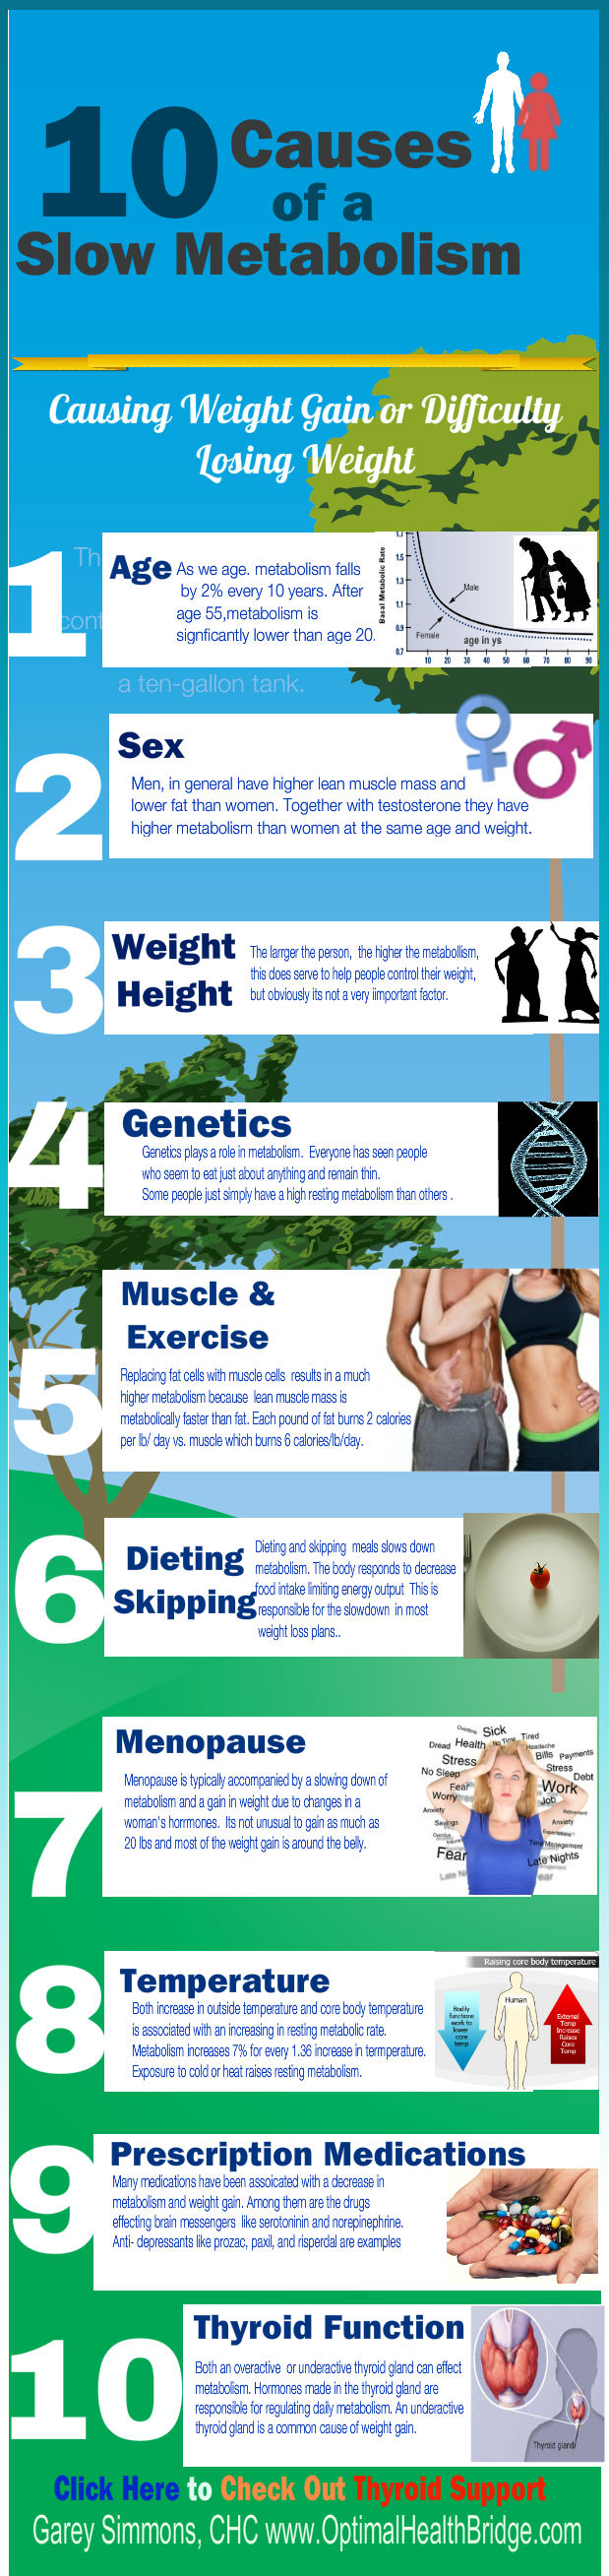 thyroid-support-info-10causes